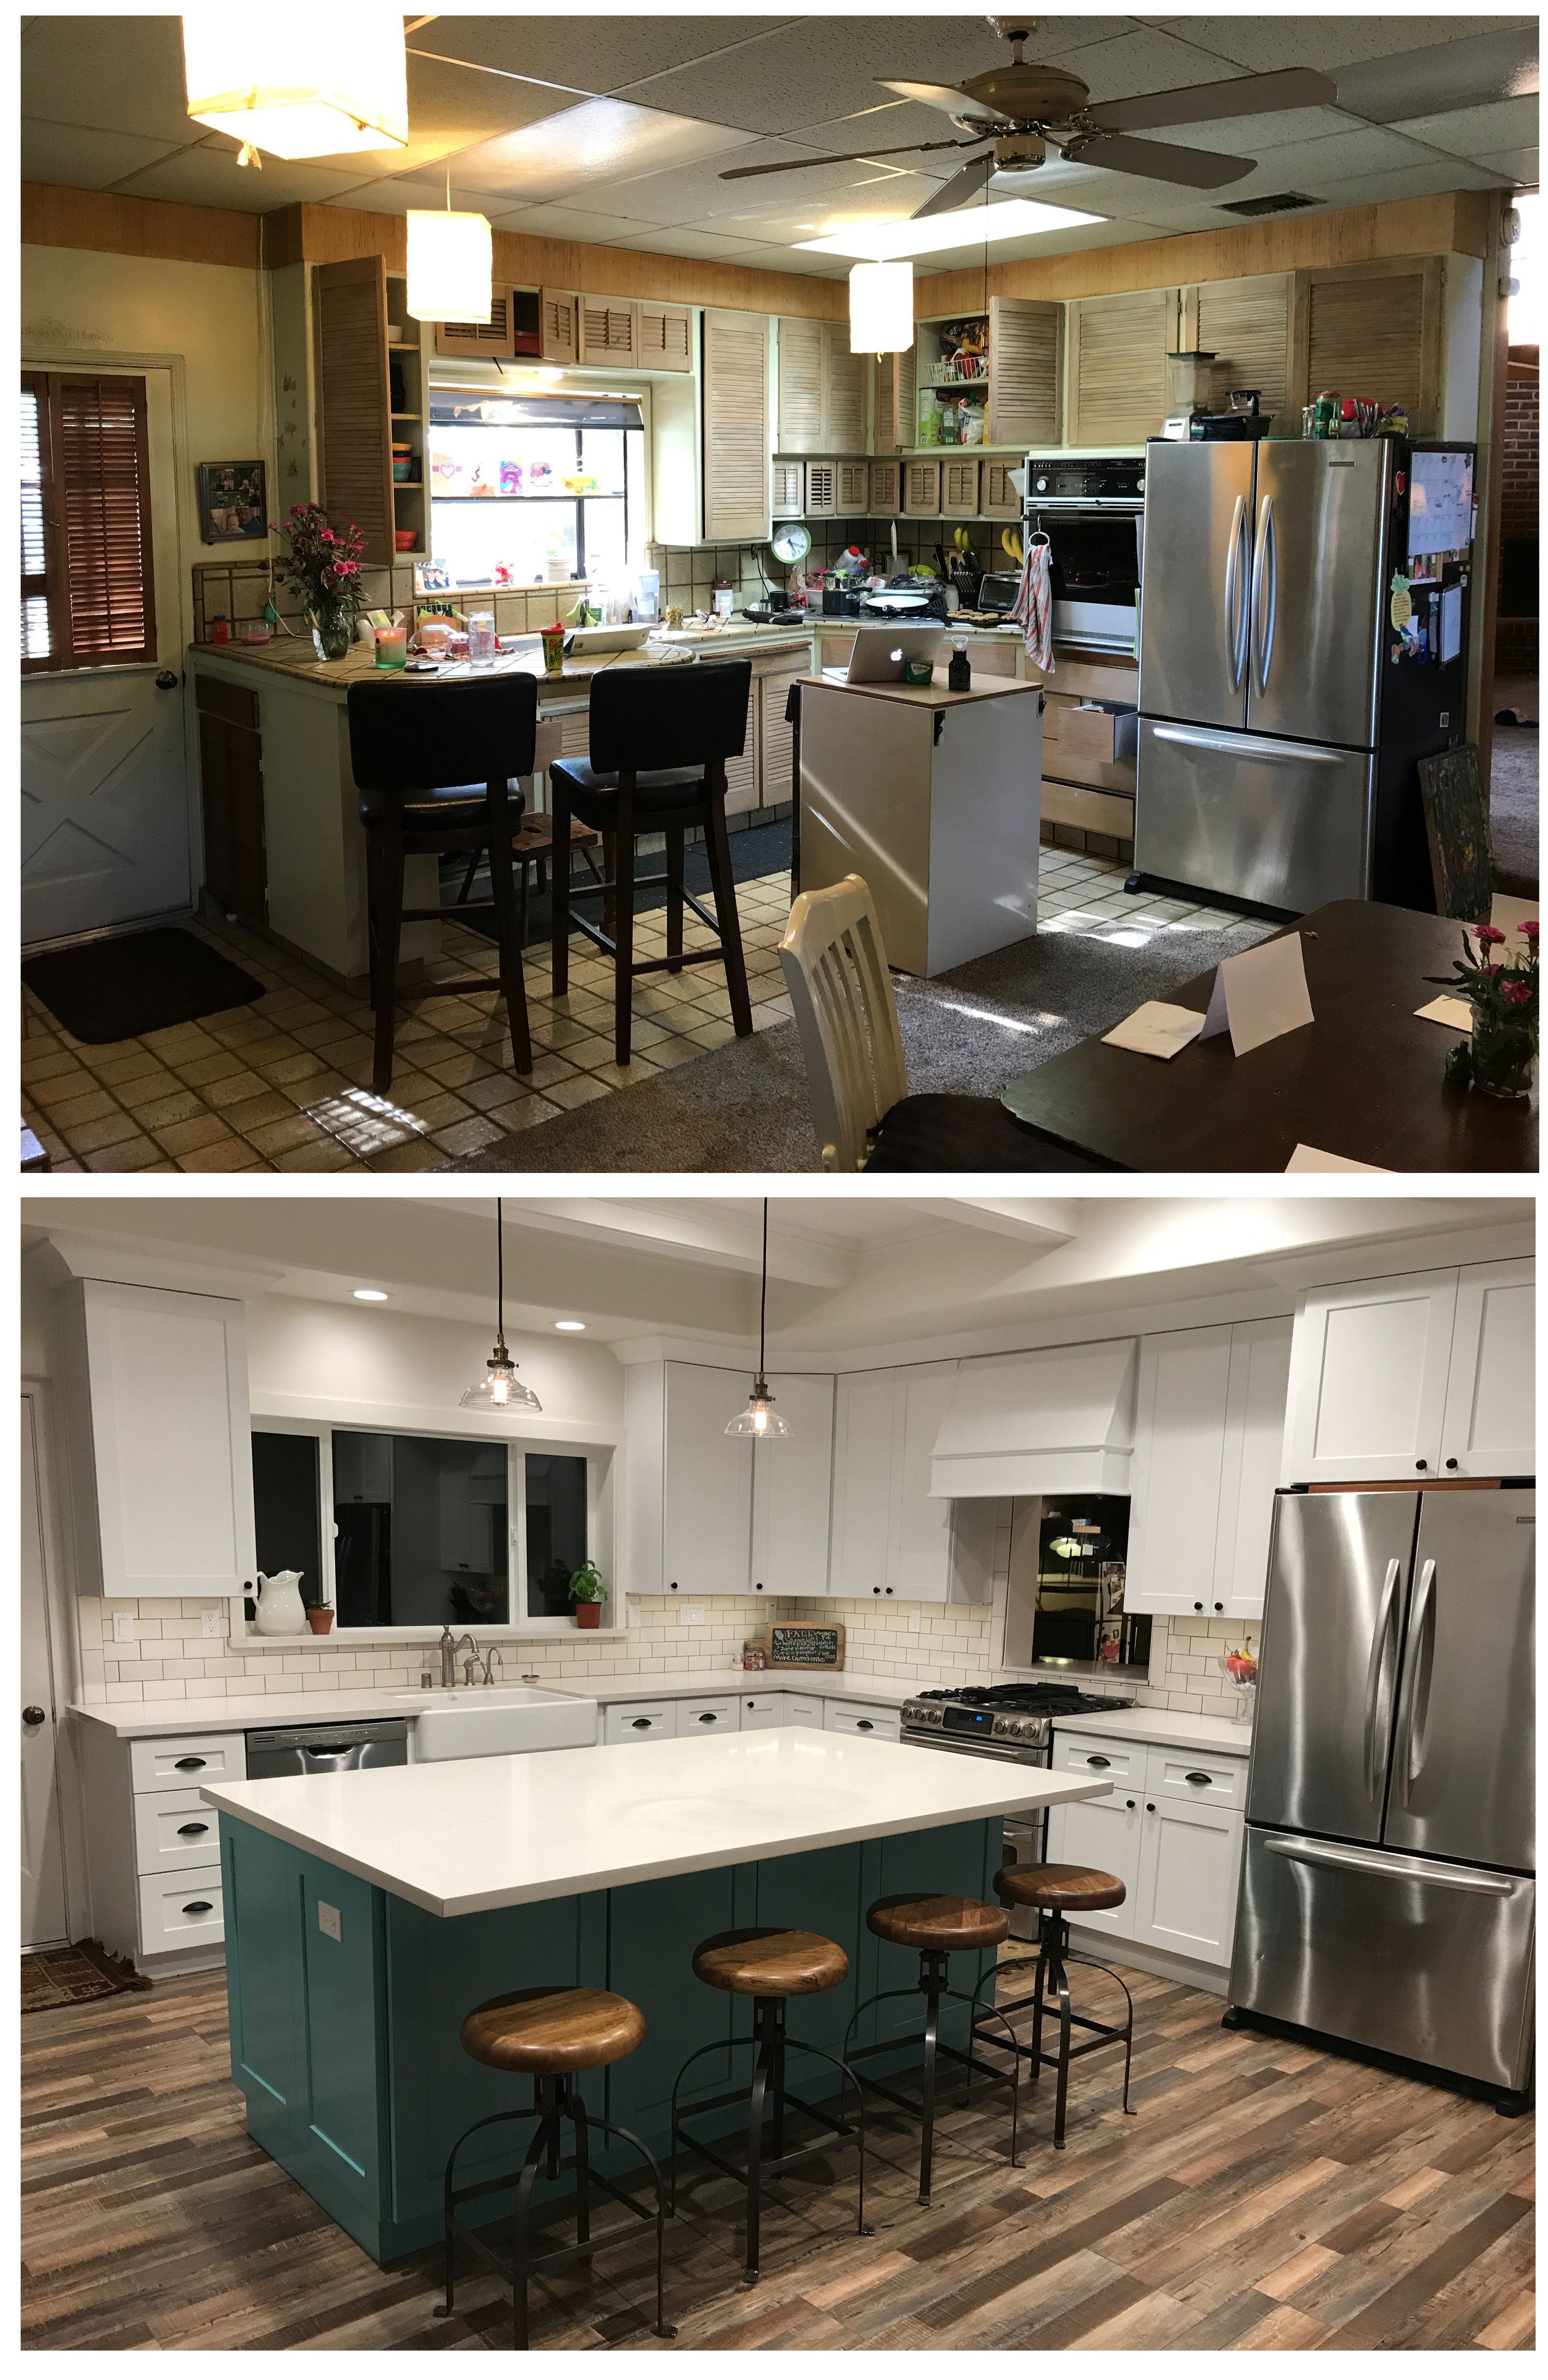 3 Simple Tips On Kitchen Remodel Before And After